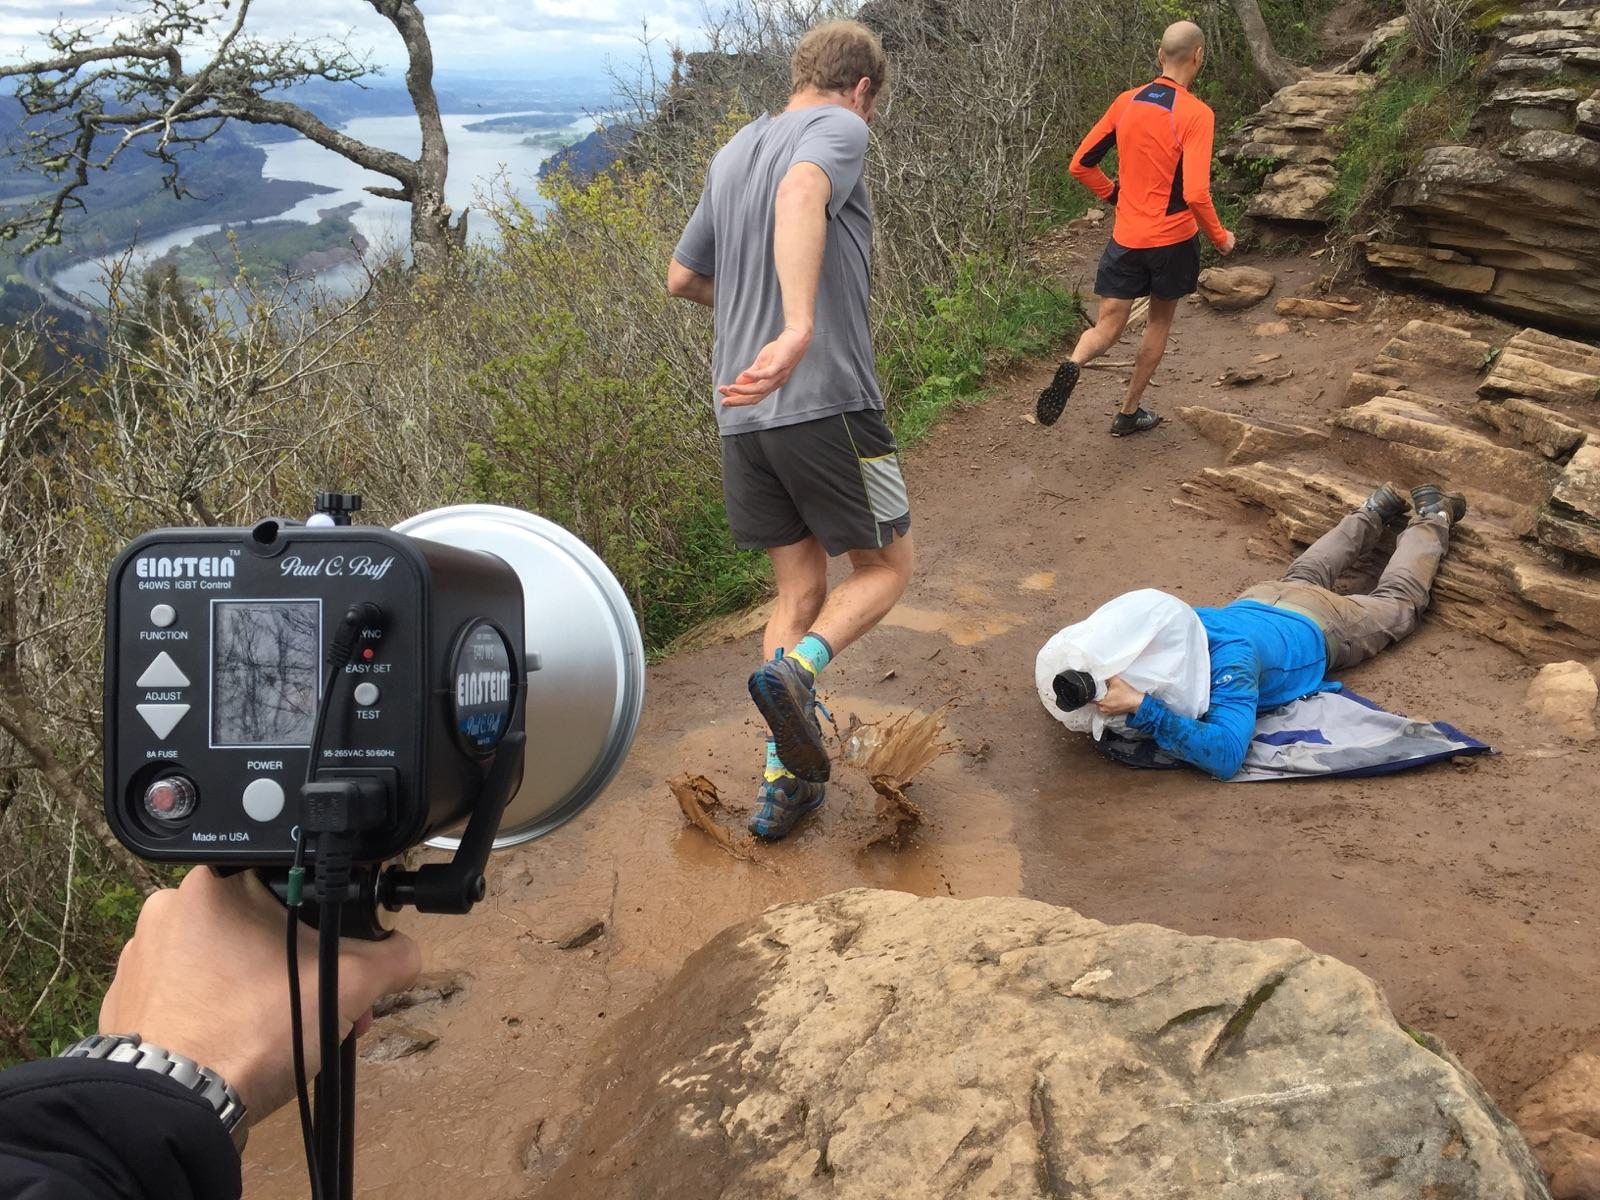 Shooting ultra runners for Portland Monthly